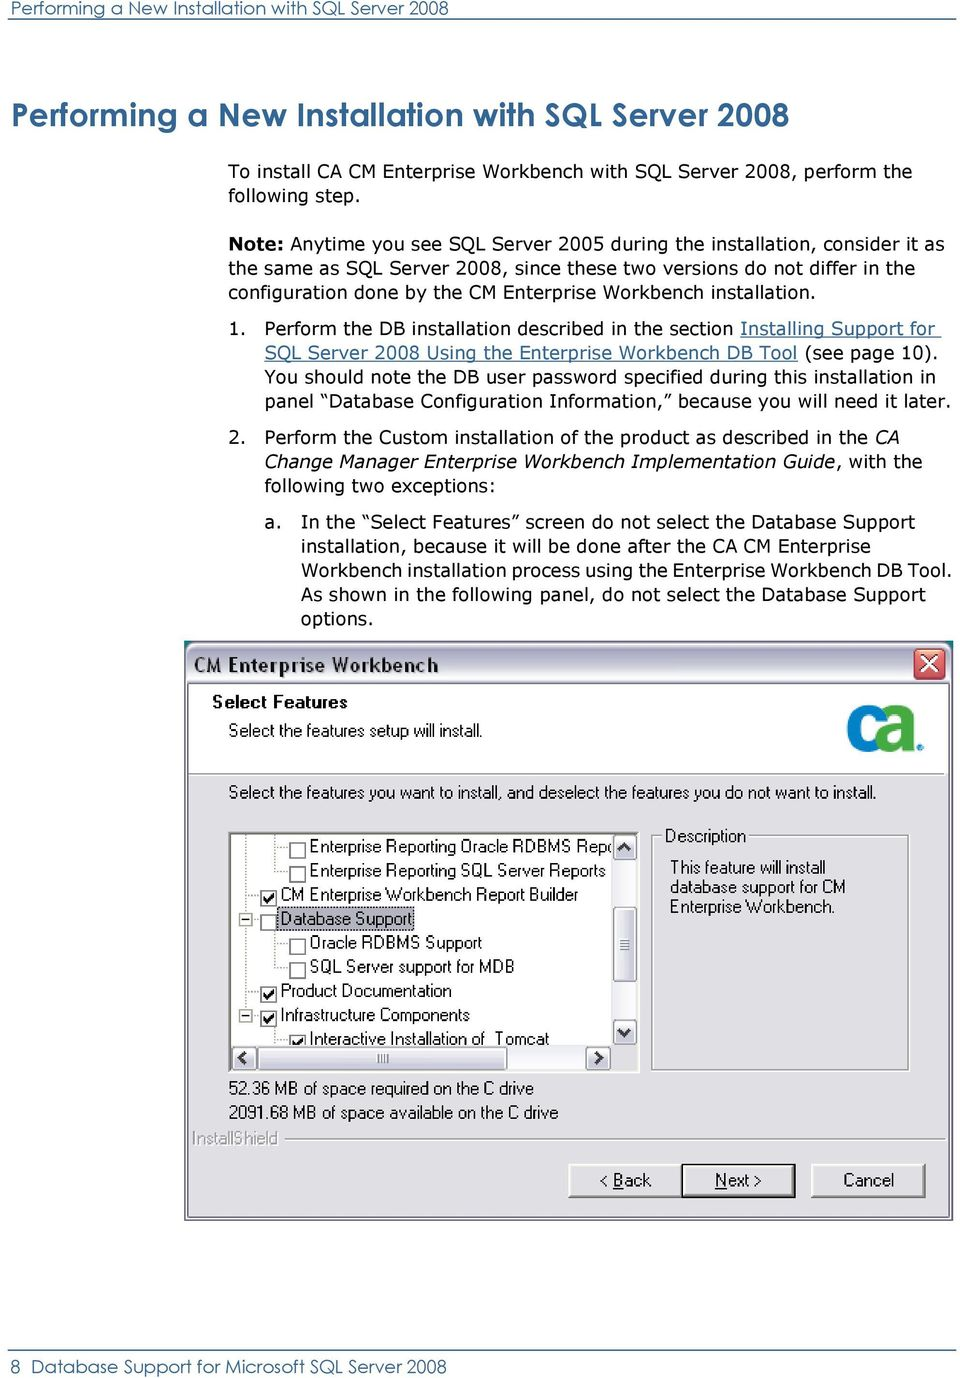 Workbench installation. 1. Perform the DB installation described in the section Installing Support for SQL Server 2008 Using the Enterprise Workbench DB Tool (see page 10).